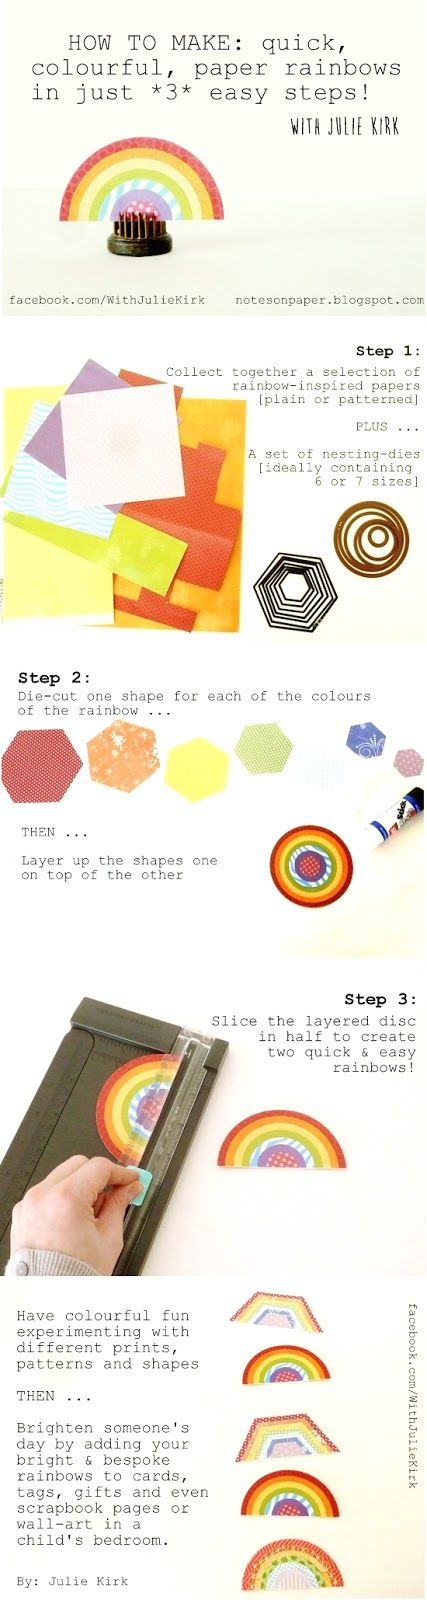 Make a quick and easy rainbow embellishment in 3 easy steps. Tutorial by Julie Kirk. #papercrafts #rainbow #St.PatricksDay